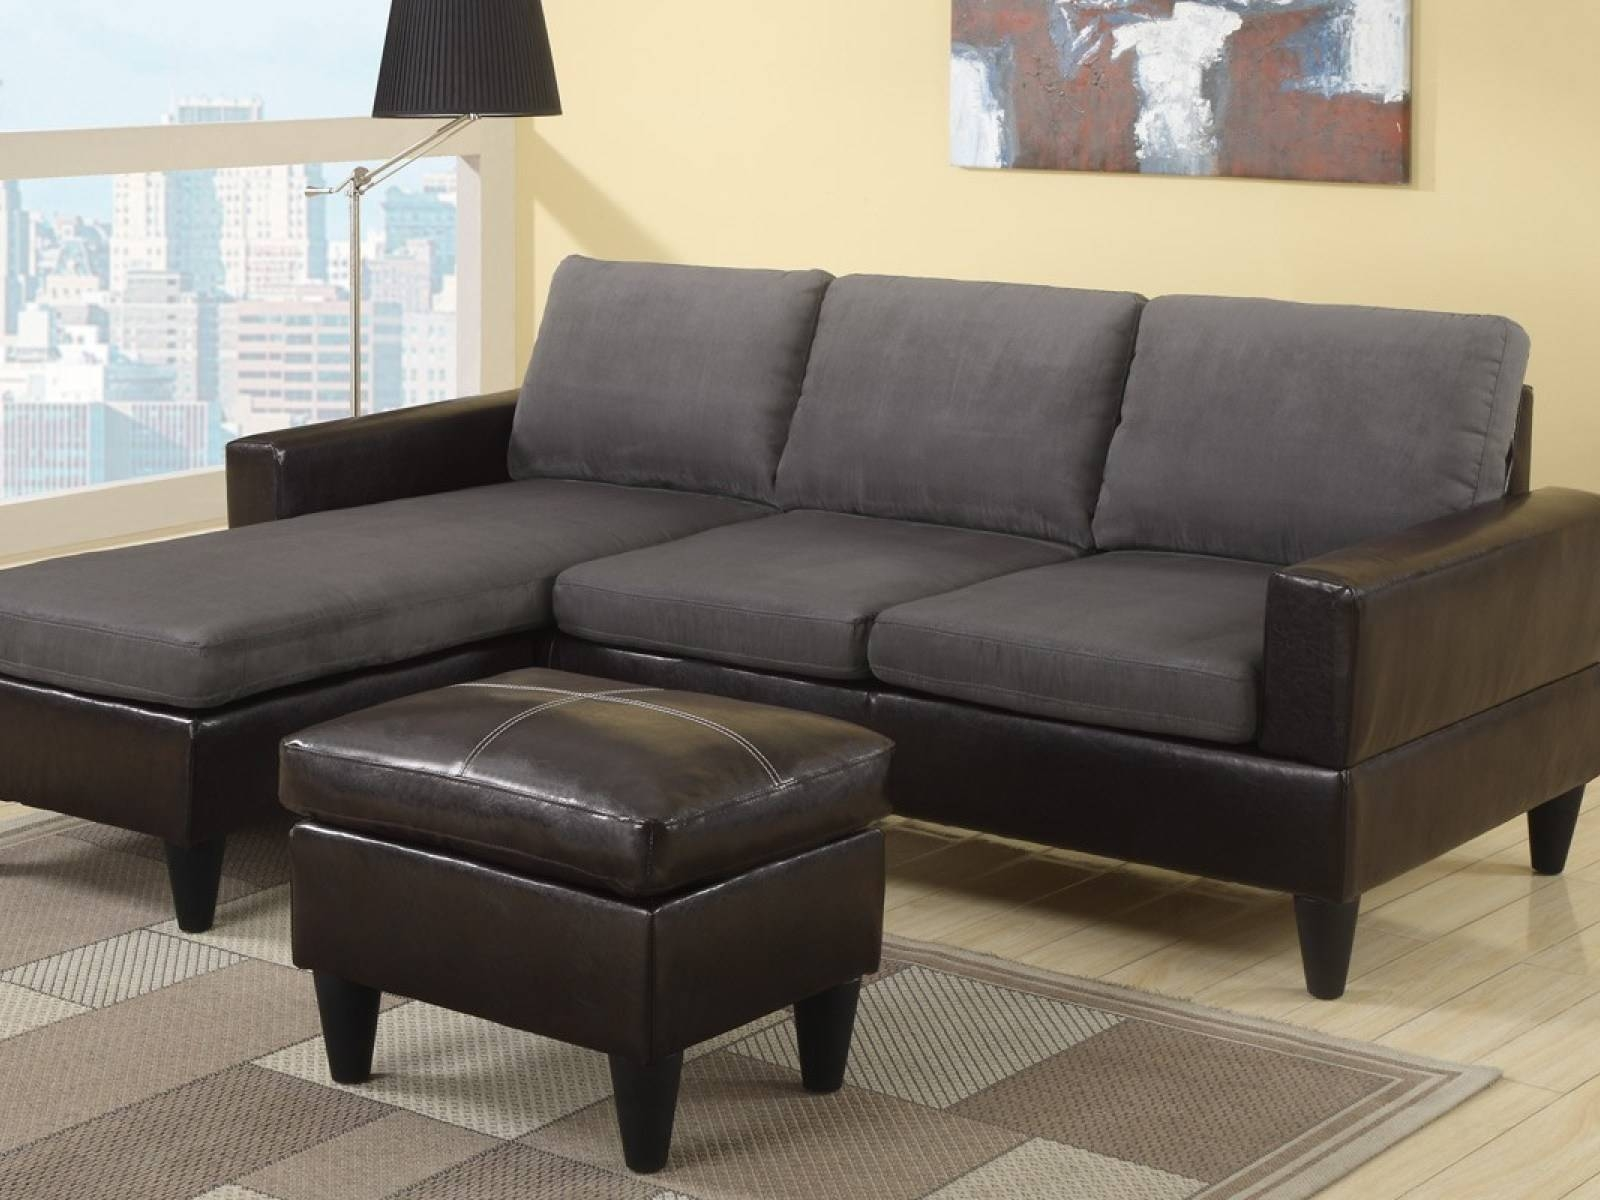 Top 30 of Mini Sectional Sofas